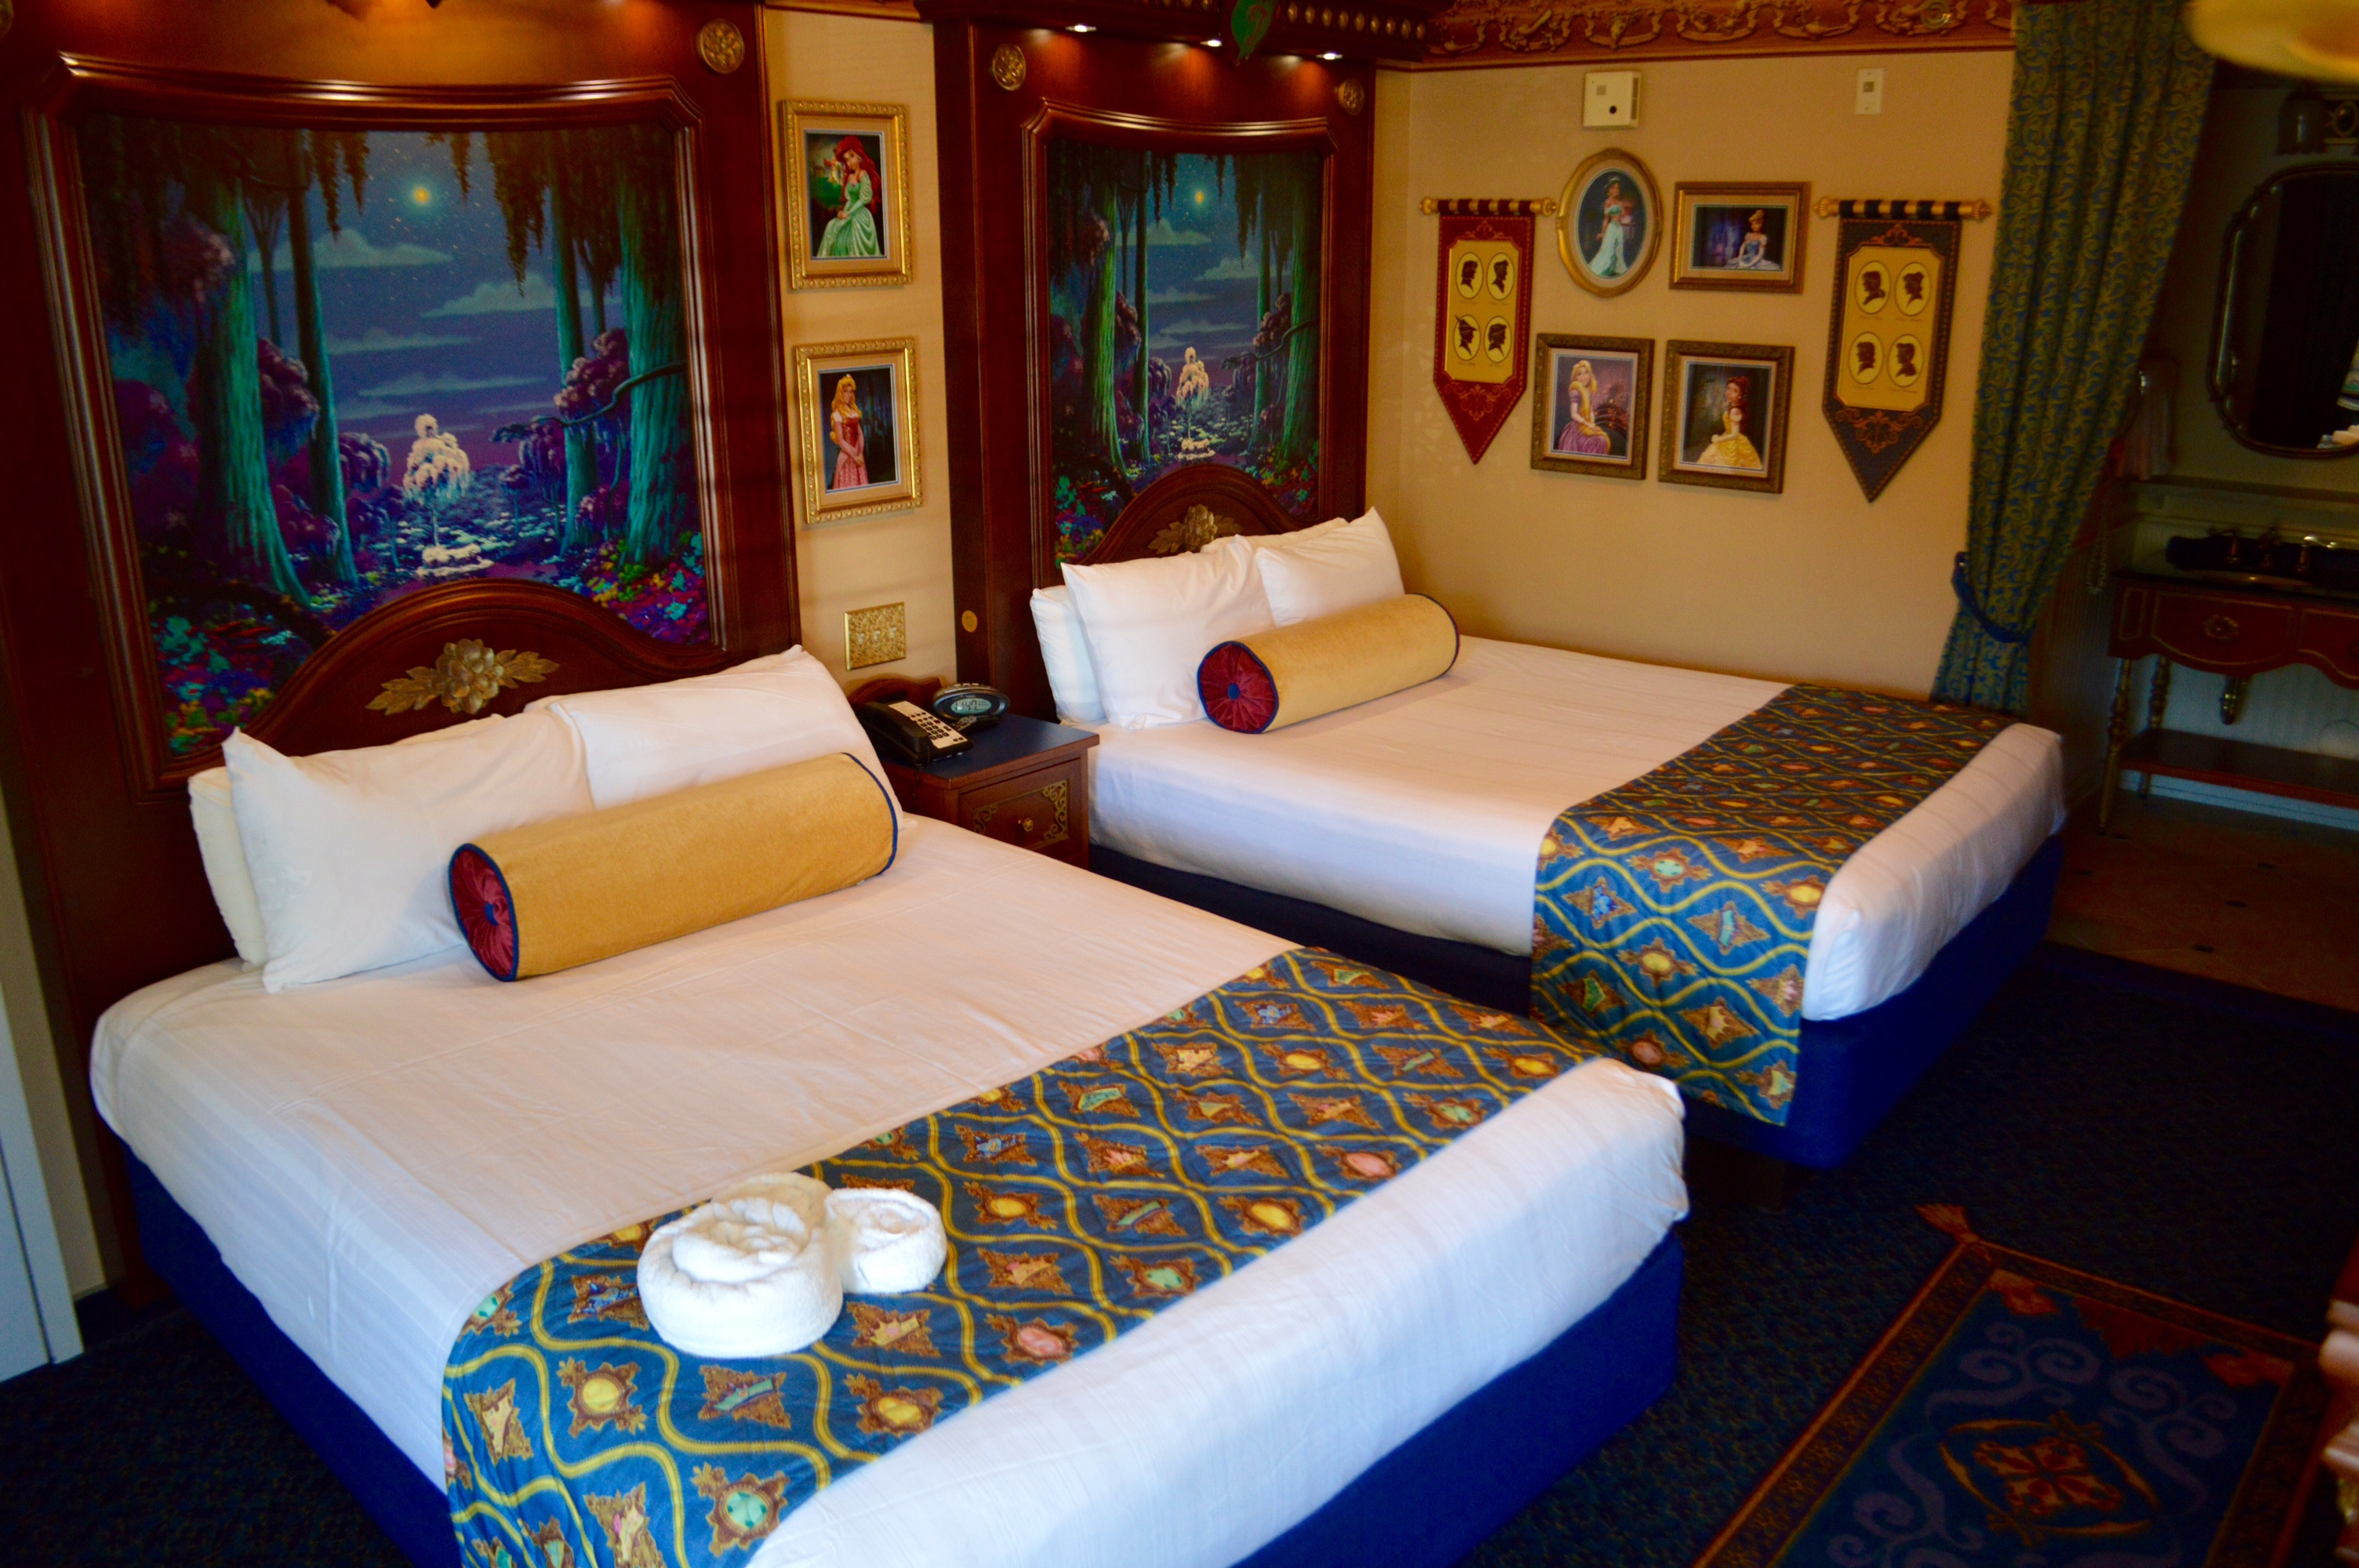 Rooms: Royal Rooms At Walt Disney World